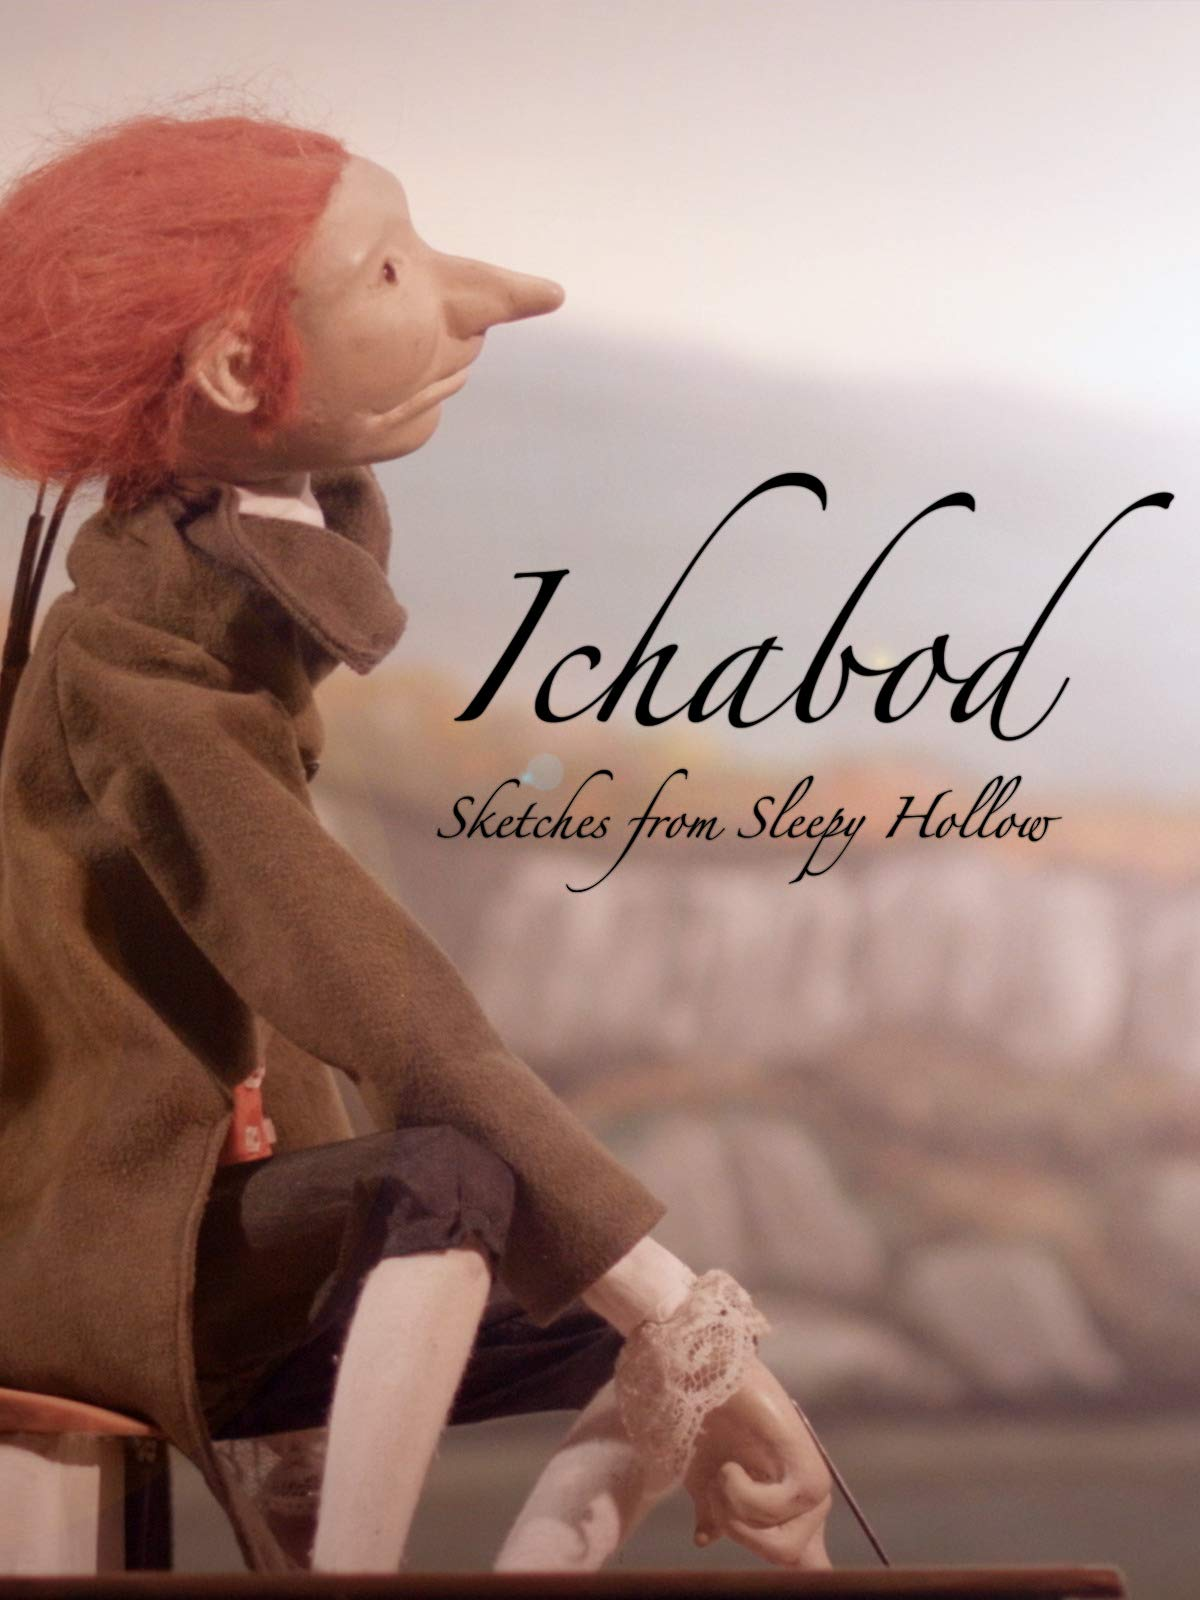 Ichabod: Sketches from Sleepy Hollow